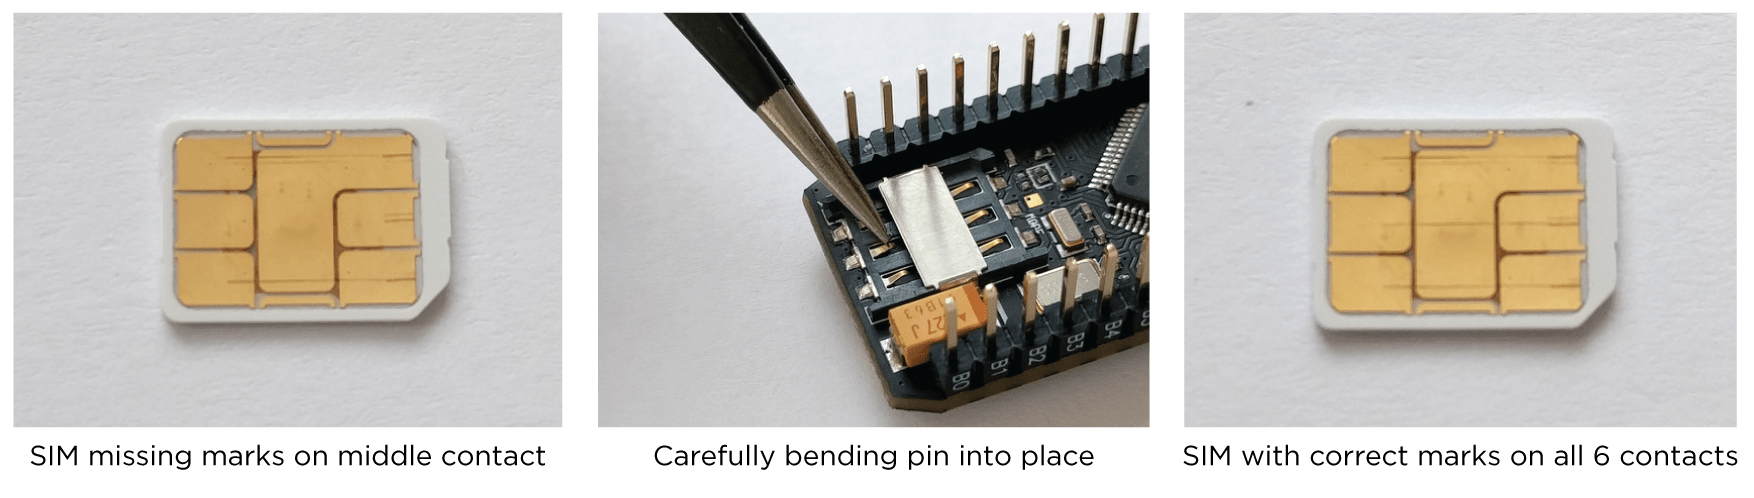 Identifying and fixing SIM holder